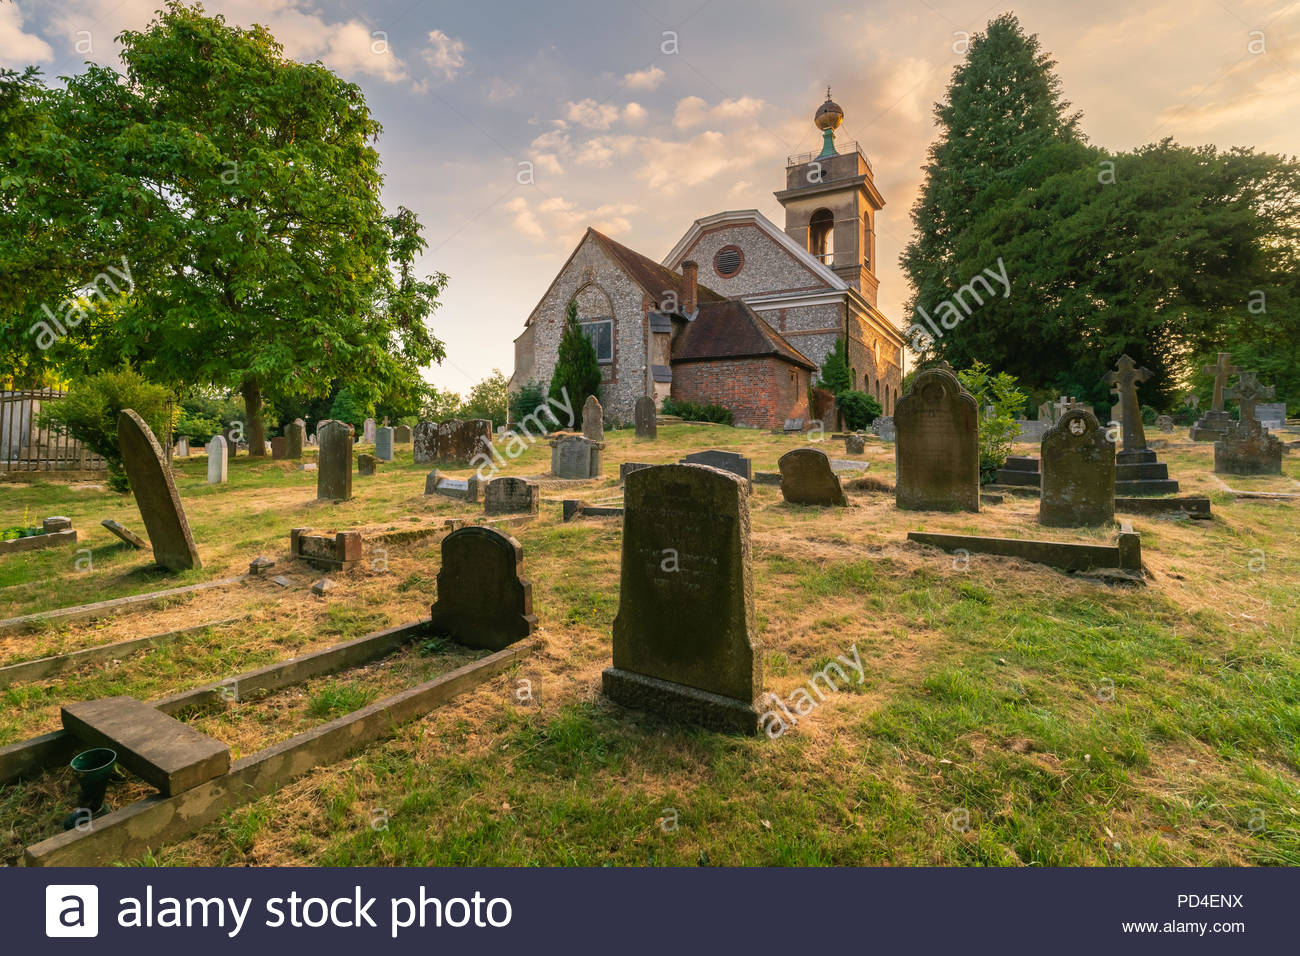 St Lawrence Church on West Wycombe Hill in the Chiltern Hills, Buckinghamshire - Stock Image